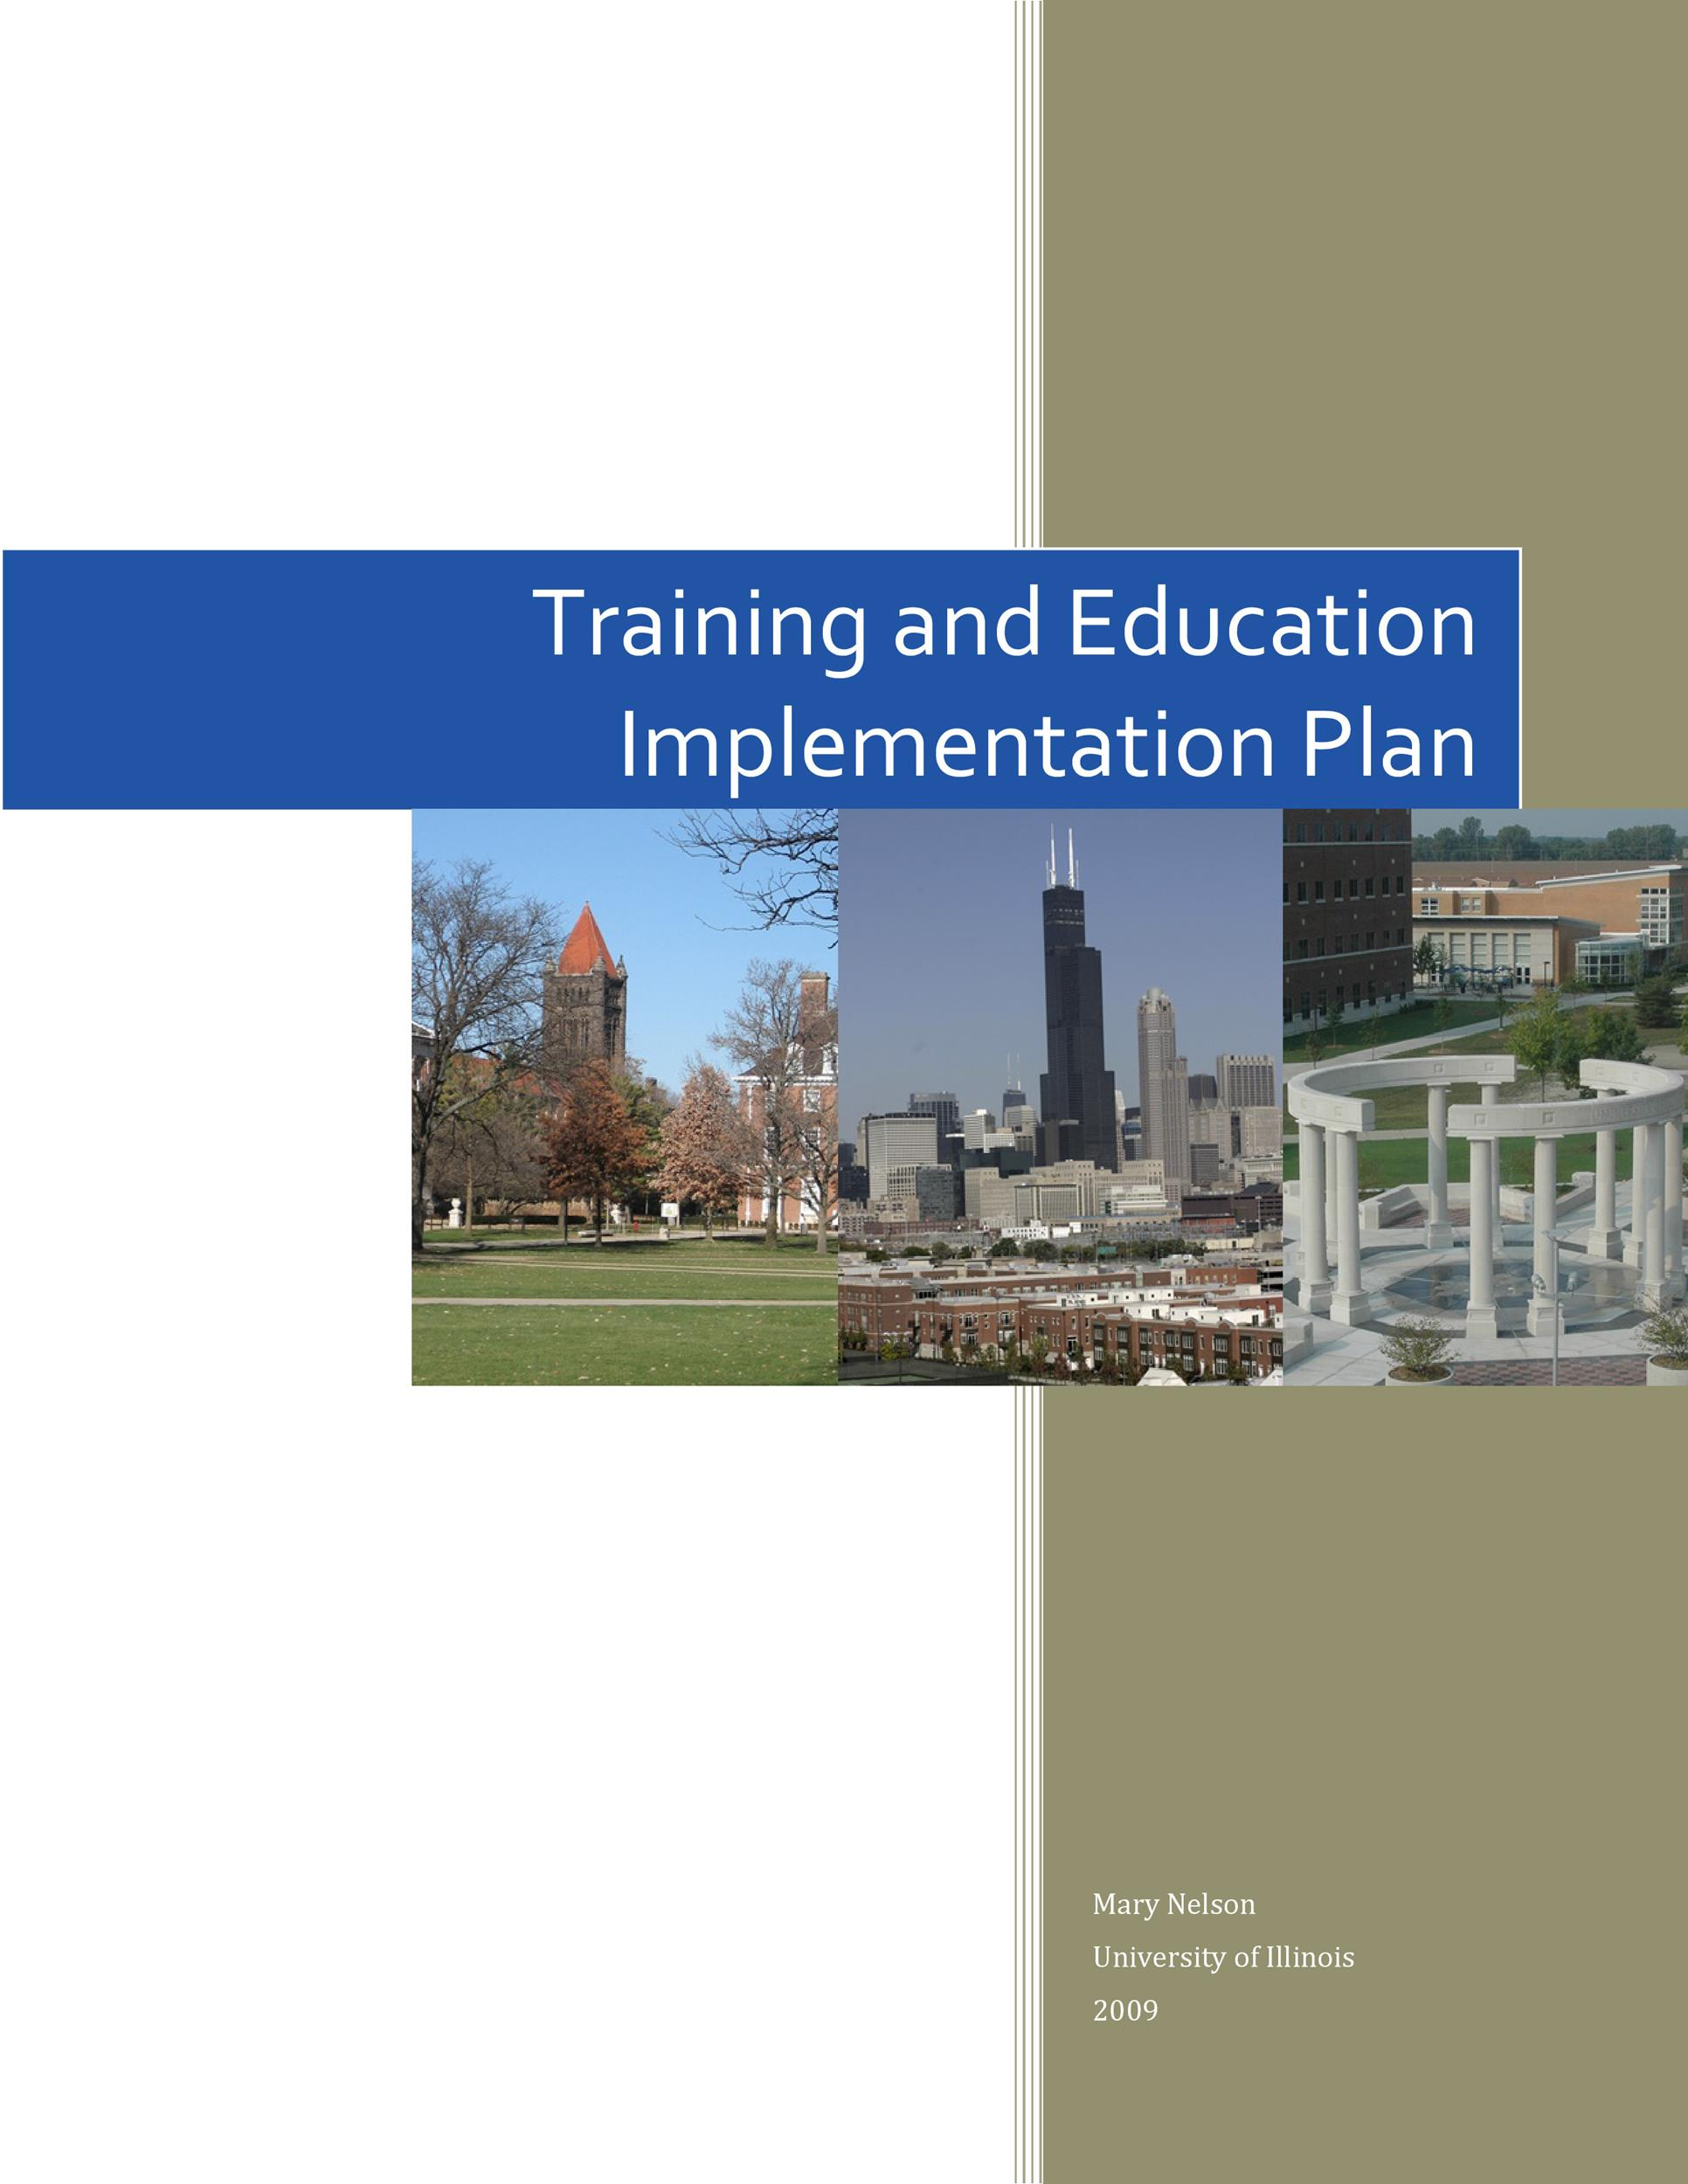 Free implementation plan 40